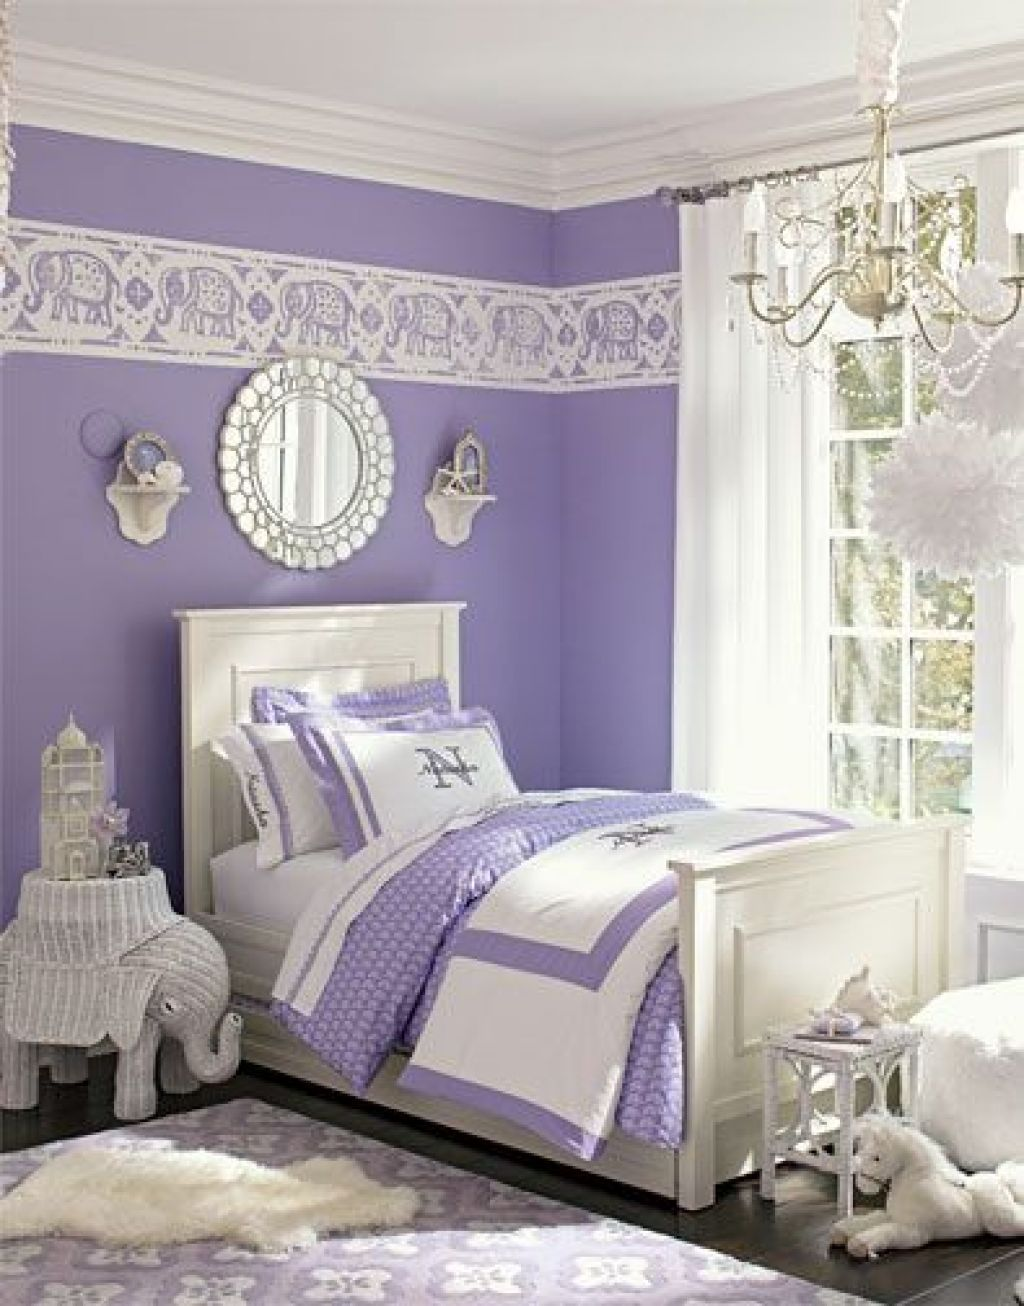 Bedrooms for girls purple and white - Bedroom Girl Purple Bedroom Ideas Teenage Girl Bedroom Ideas With Purple Color Wall And